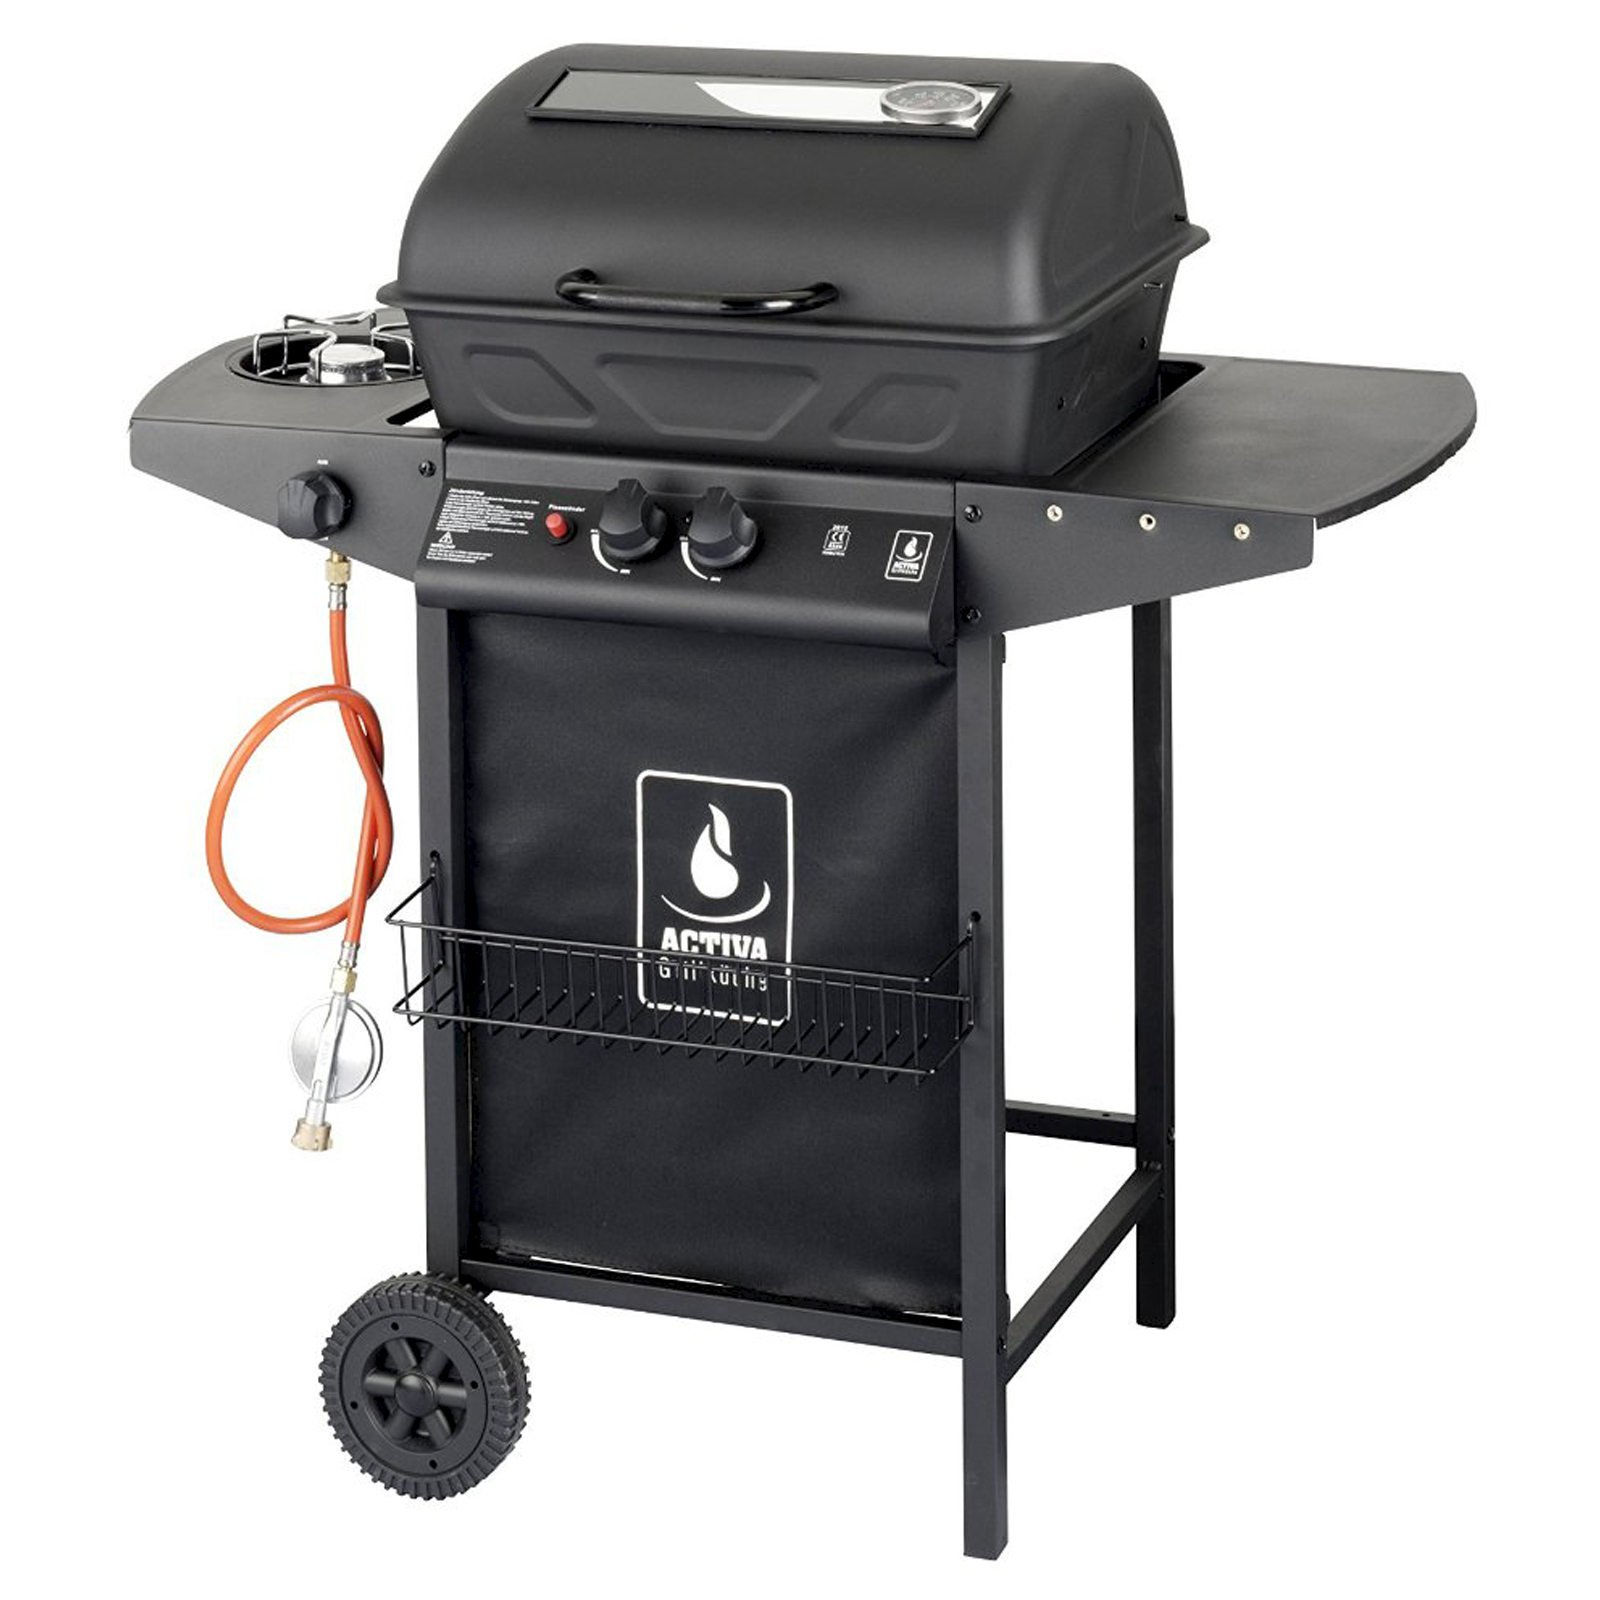 Activa Lava Stone Gas Grill 5.5 KW + Side Burner 2.5 KW